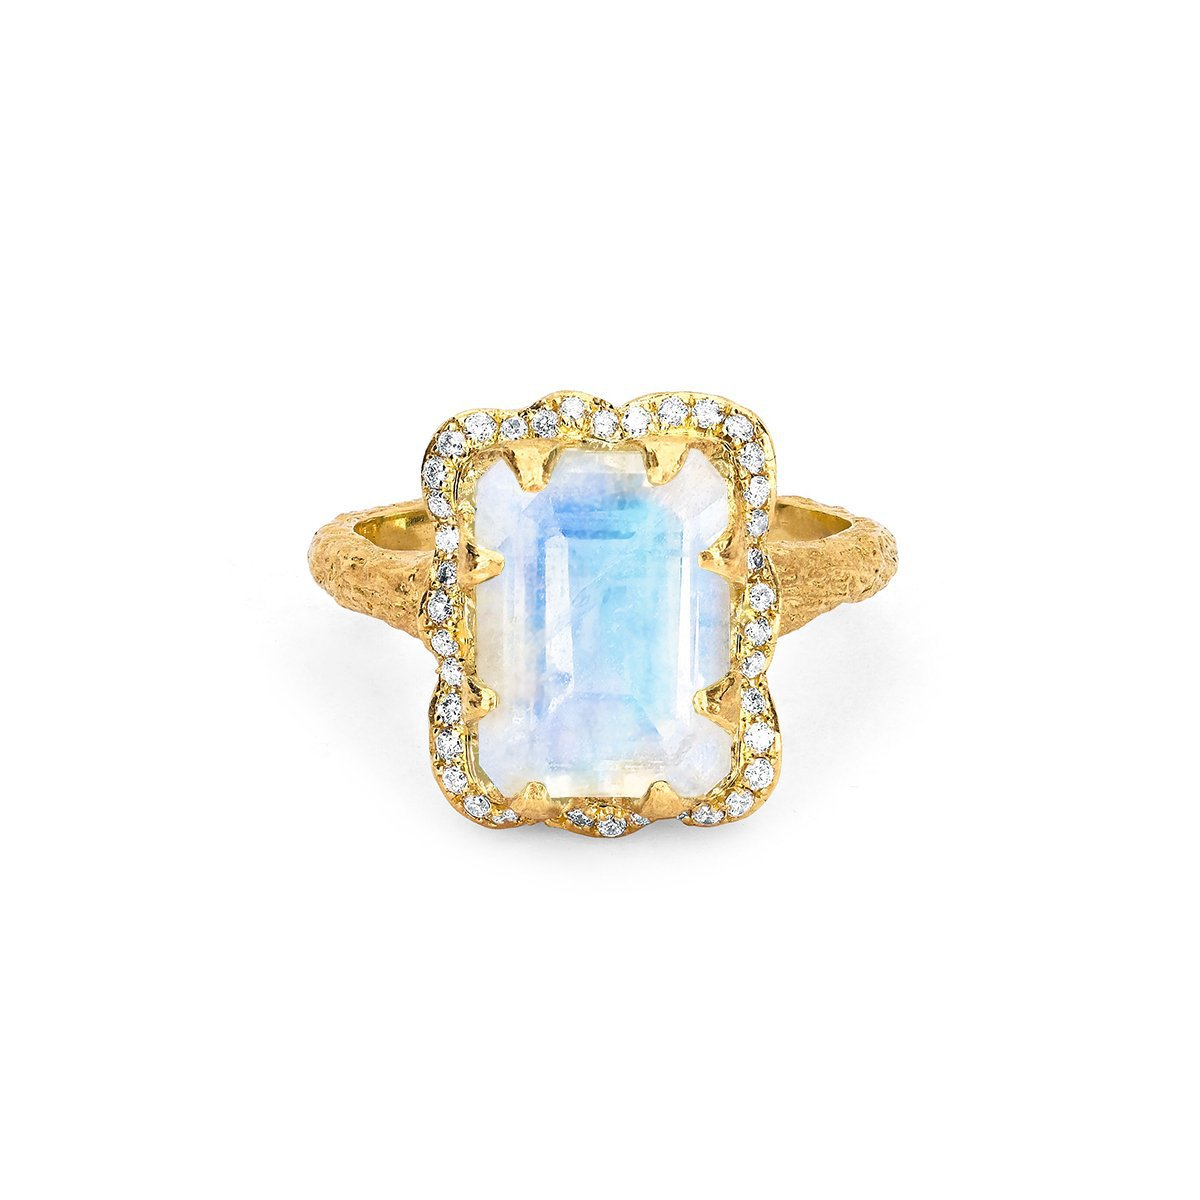 18k Queen Emerald Cut Moonstone Ring with Full Pavé Diamond Halo